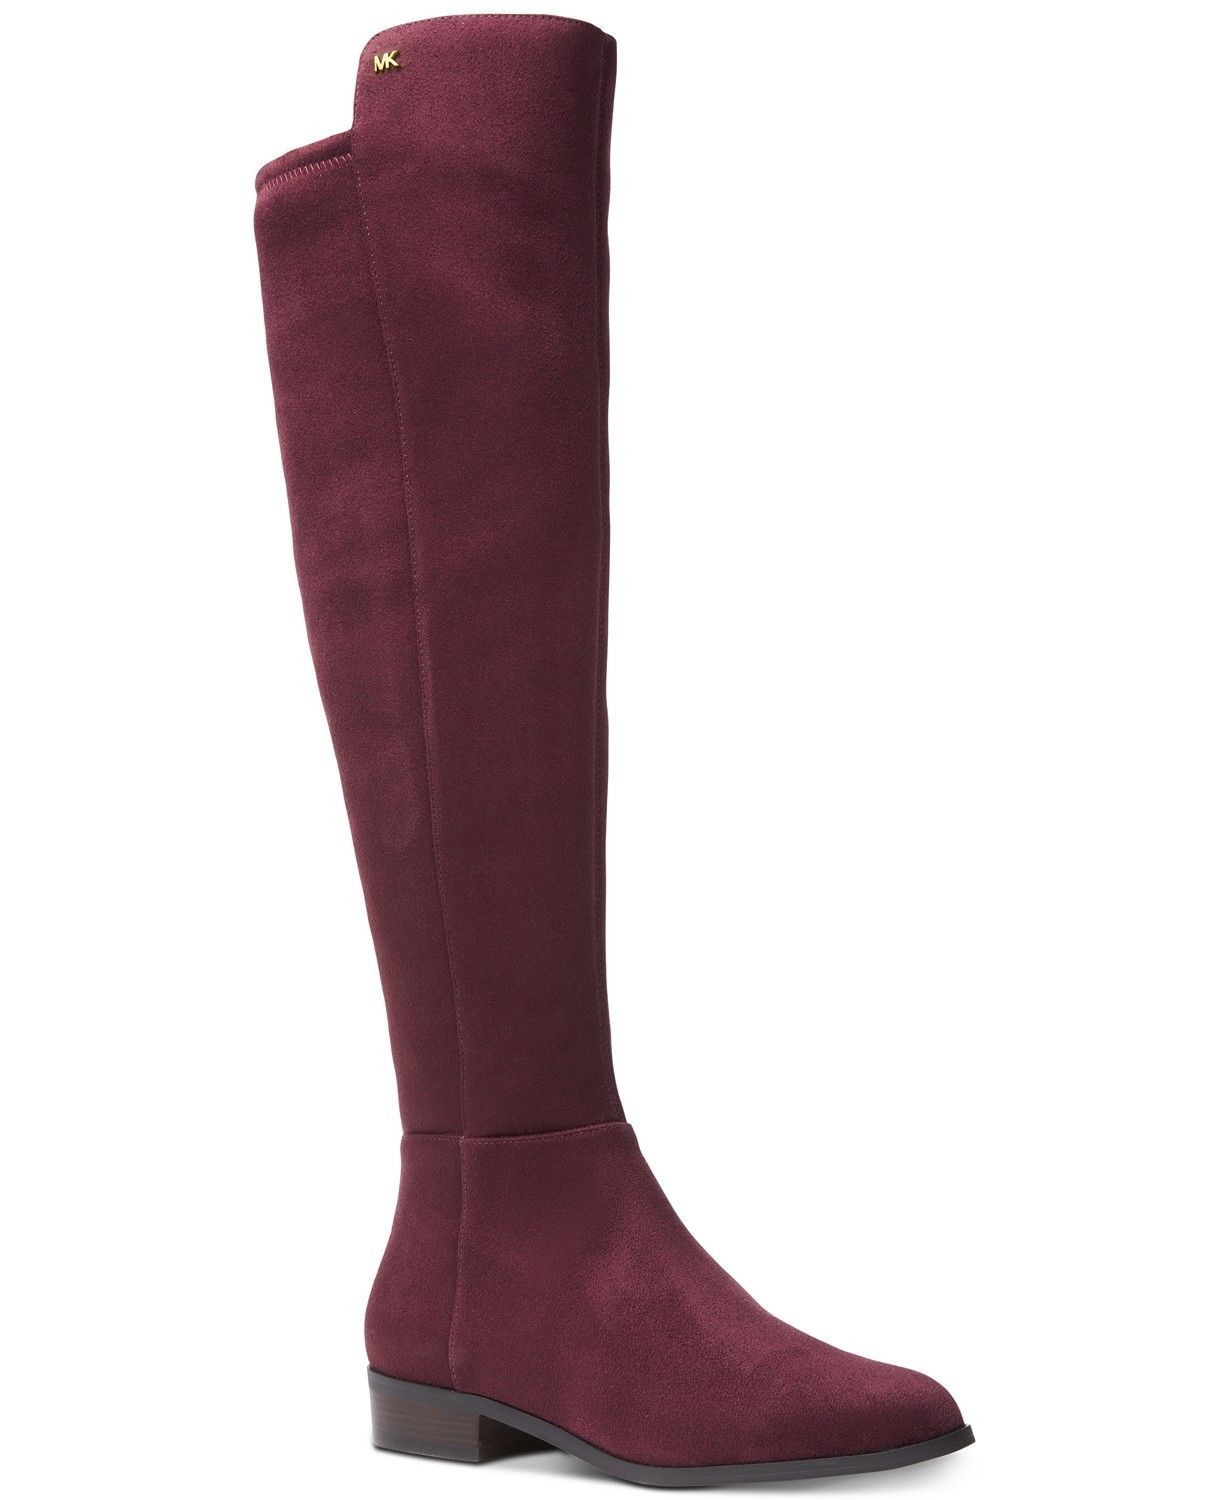 Michael Kors MK Women's Tall Suede Bromley Flat Riding Boots Shoes Damson